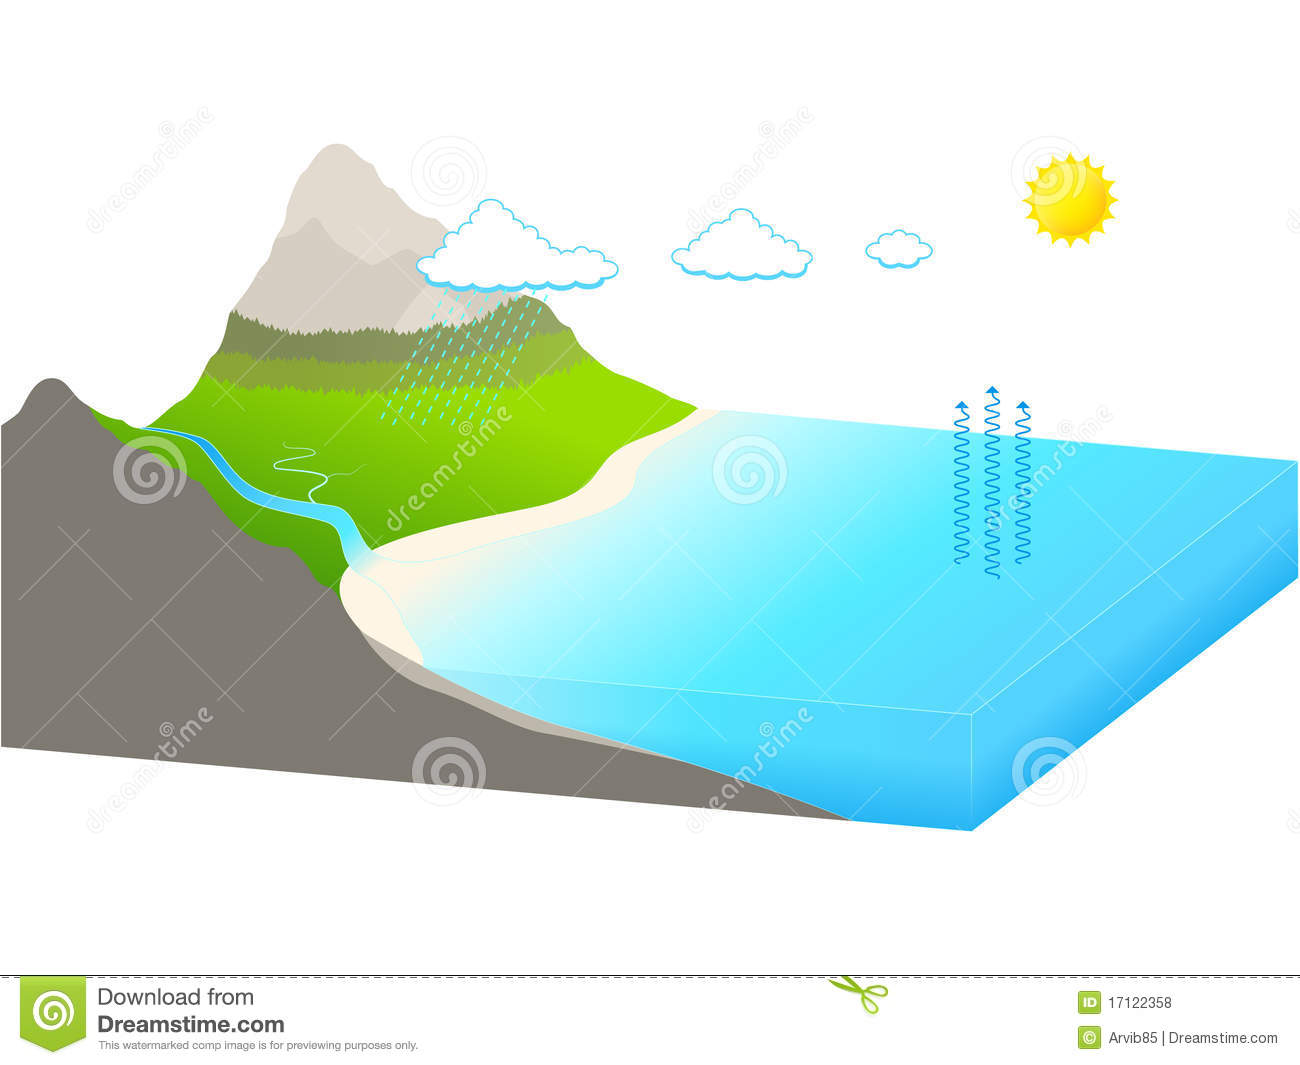 water cycle clip art - photo #43